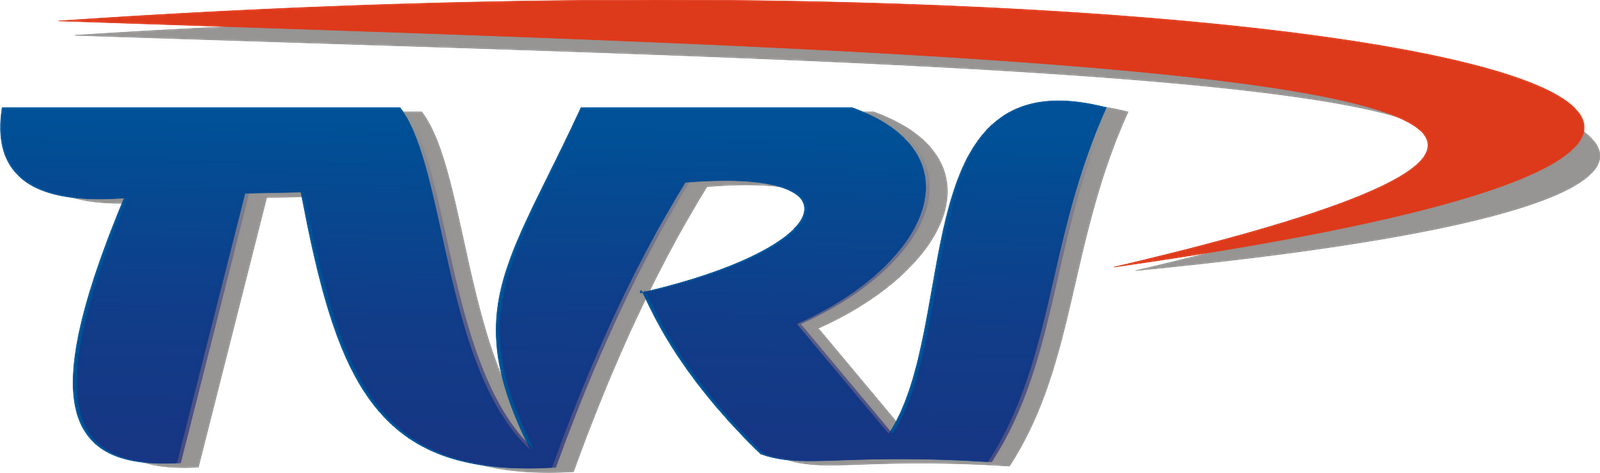 Image result for tvri png